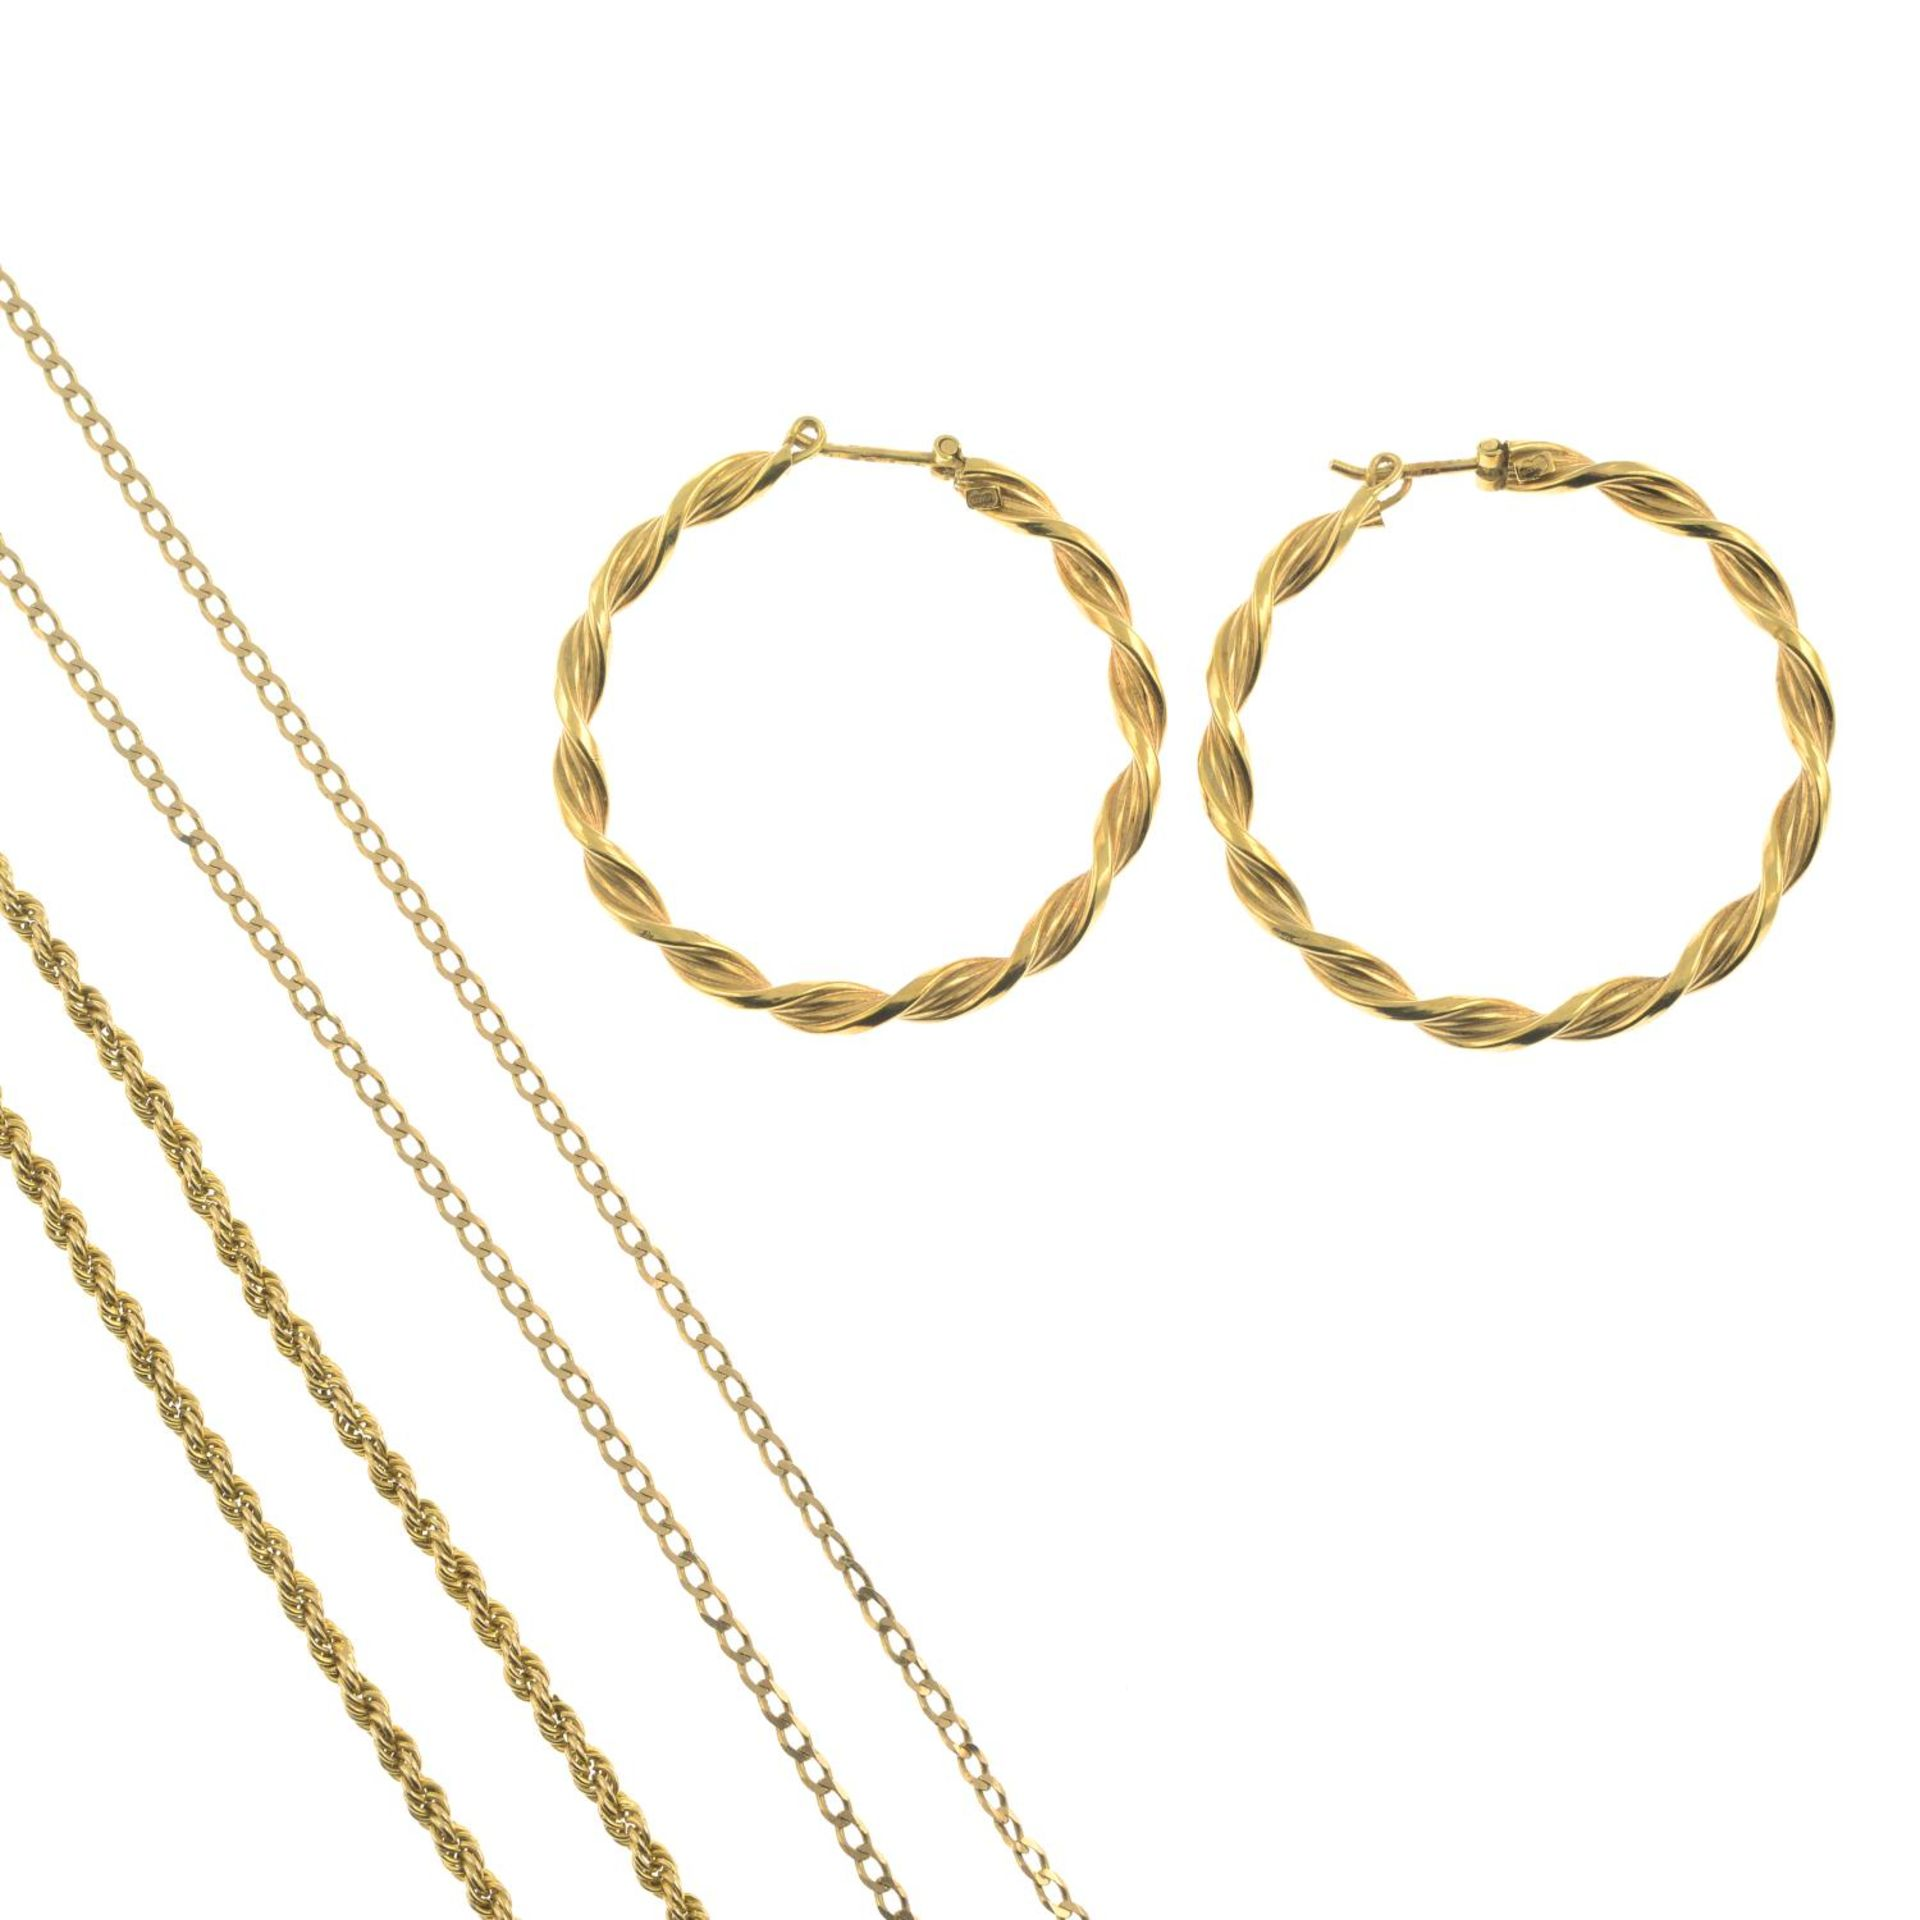 Four items of 9ct gold jewellery,